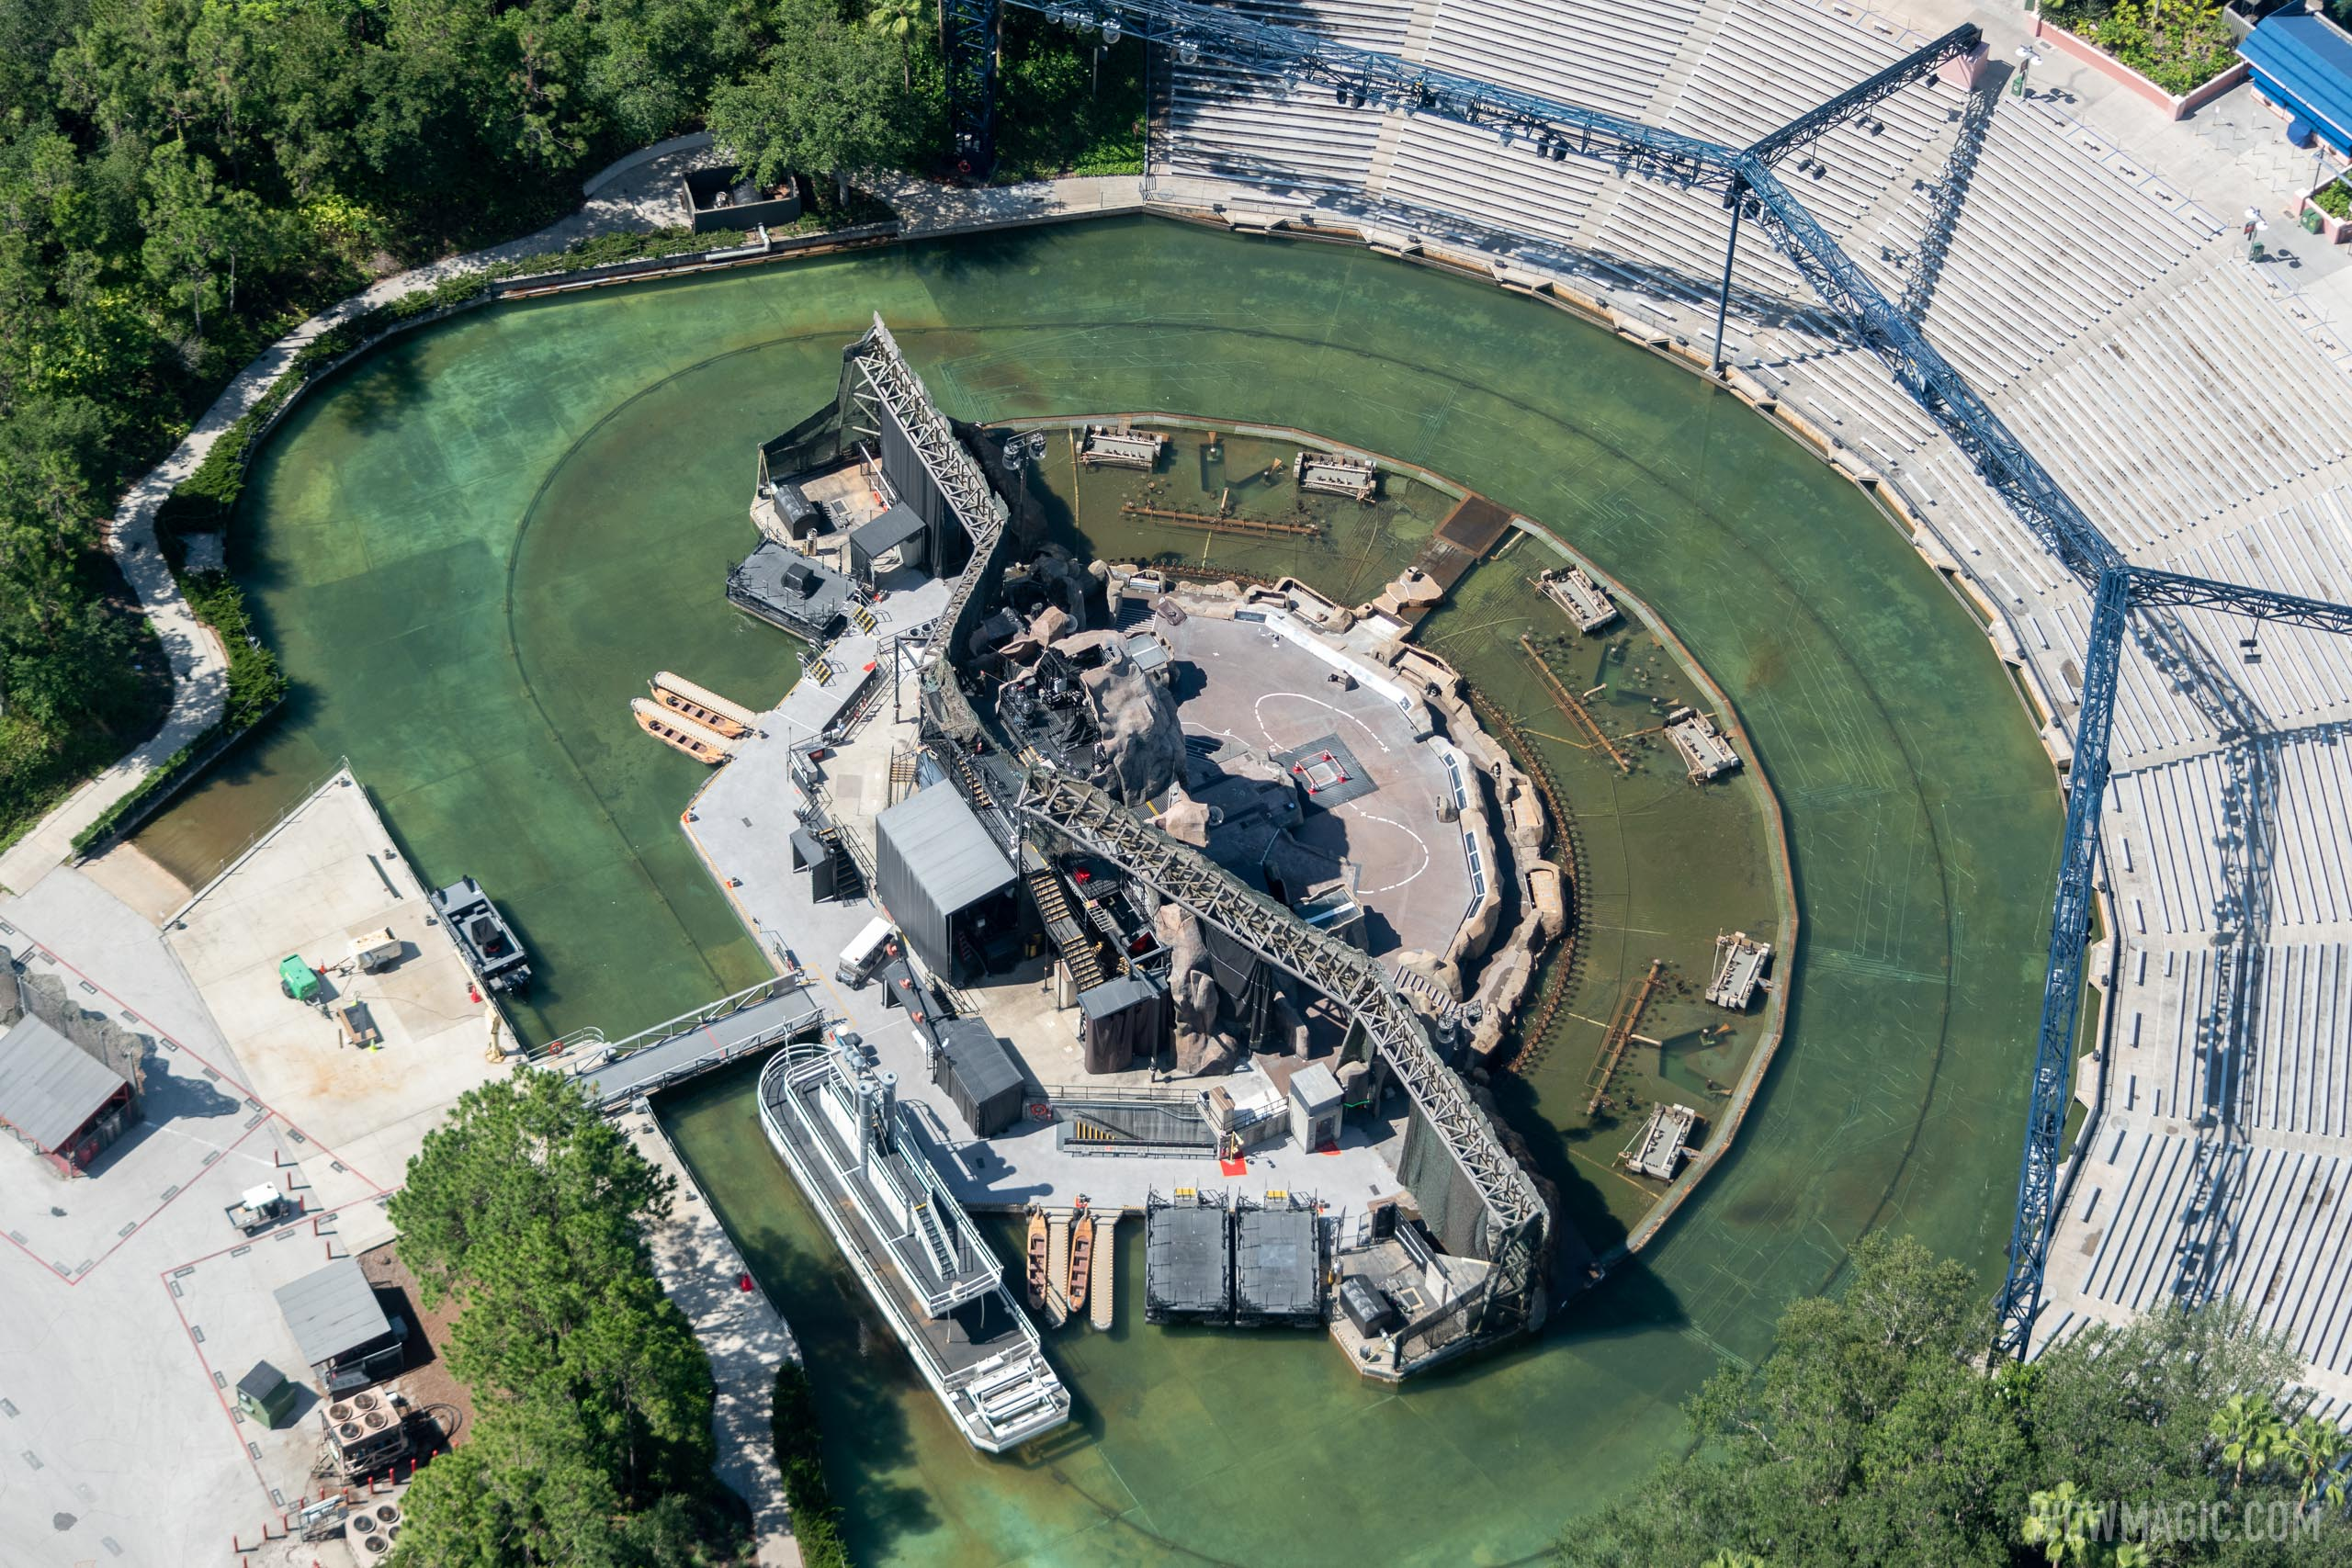 Aerial view of Fantasmic at the Hollywood Hills Amphitheater